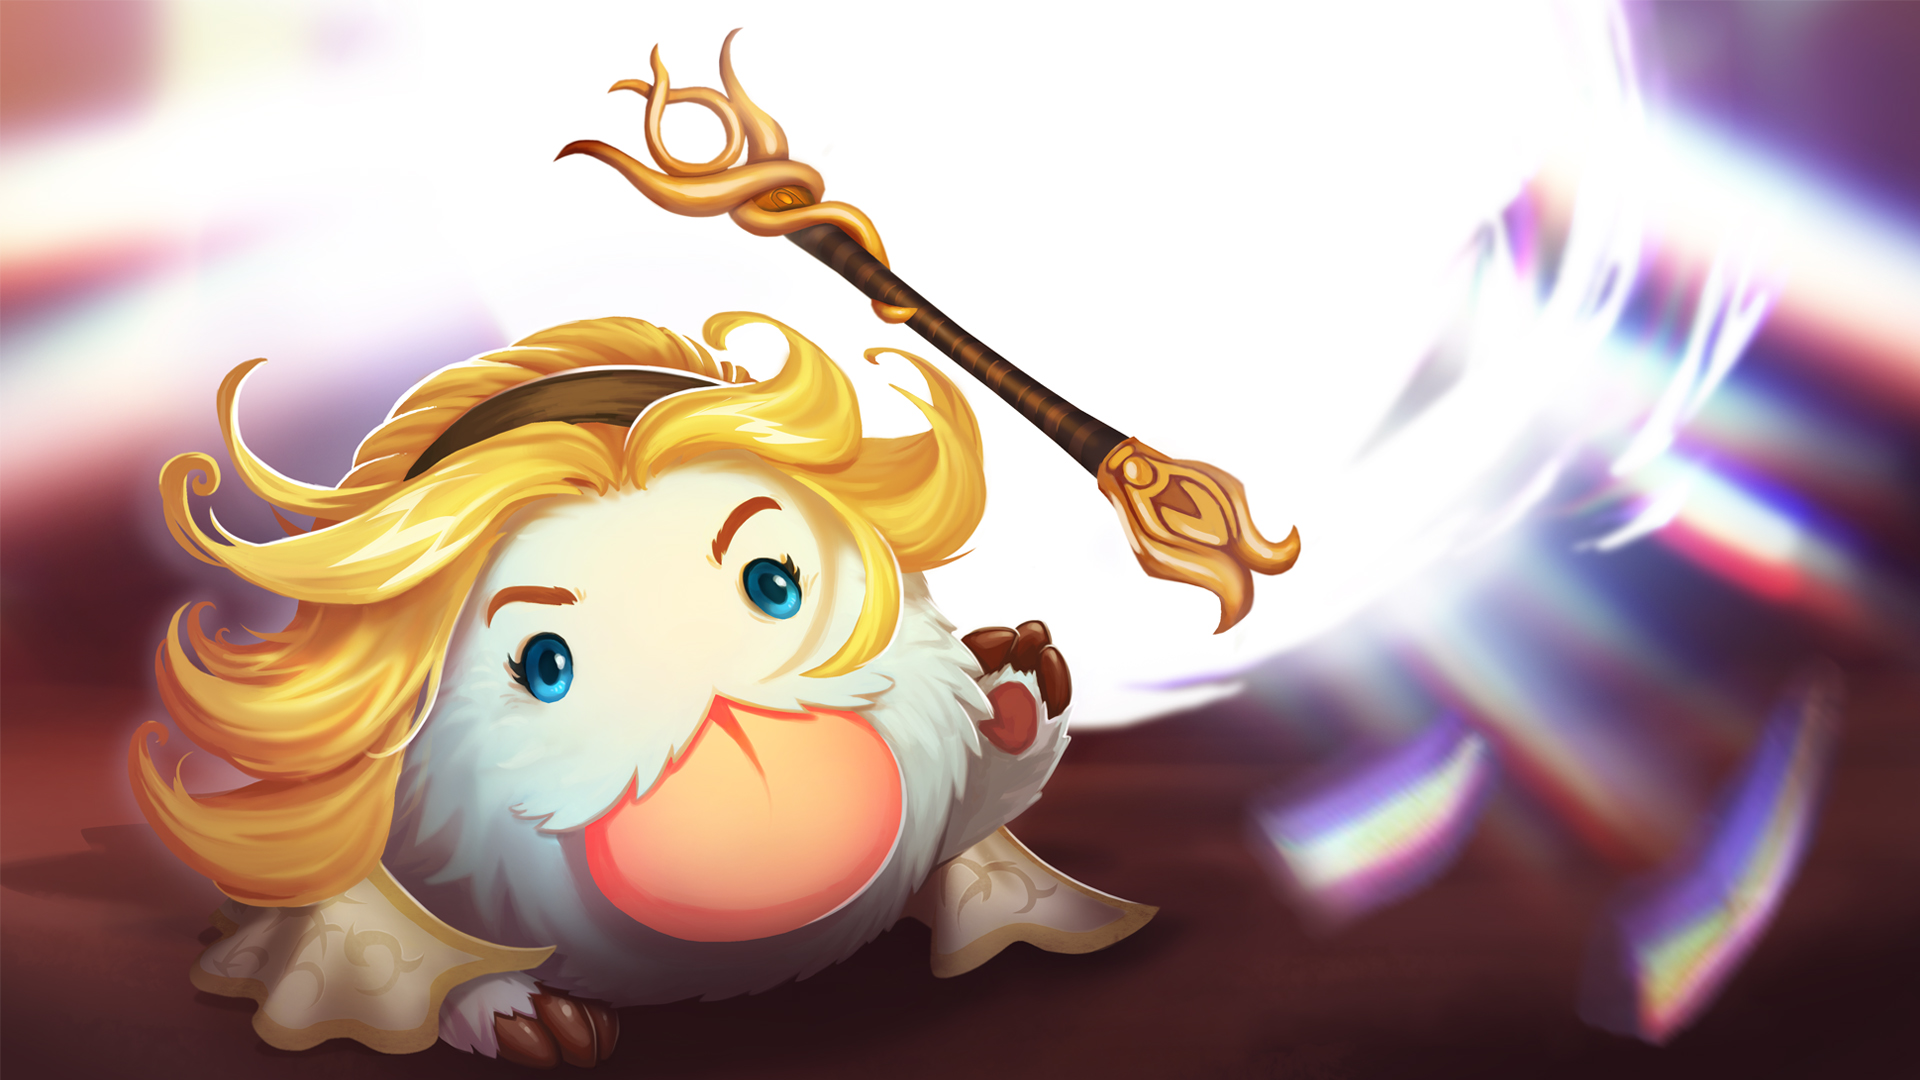 Lux Poro LoL Wallpapers 1920x1080